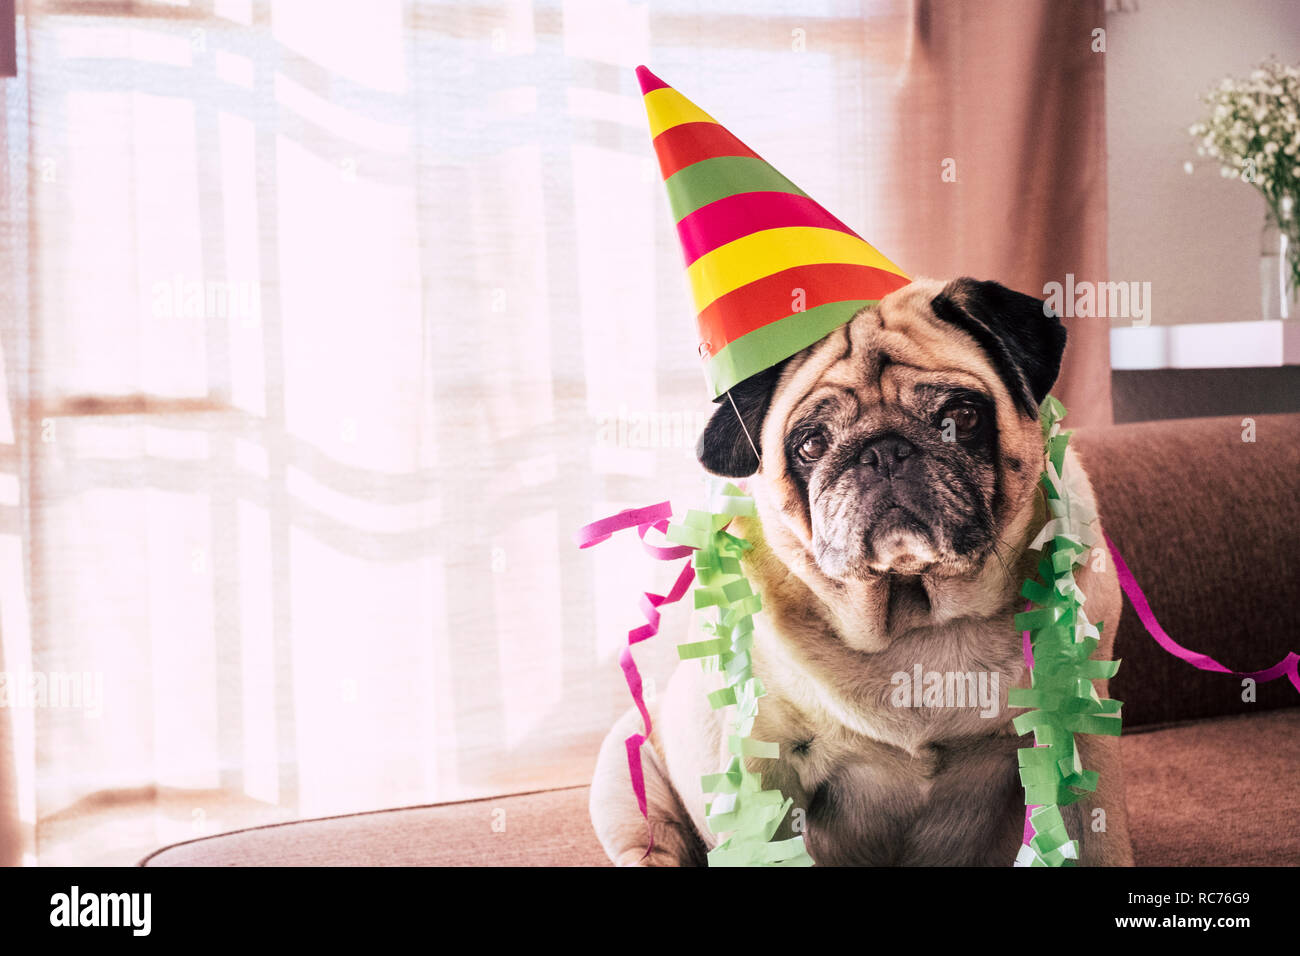 Carnival celebration or birthday anniversary for special funny old dog pug with party hat and sad serious funny expression - indoor event activity for - Stock Image